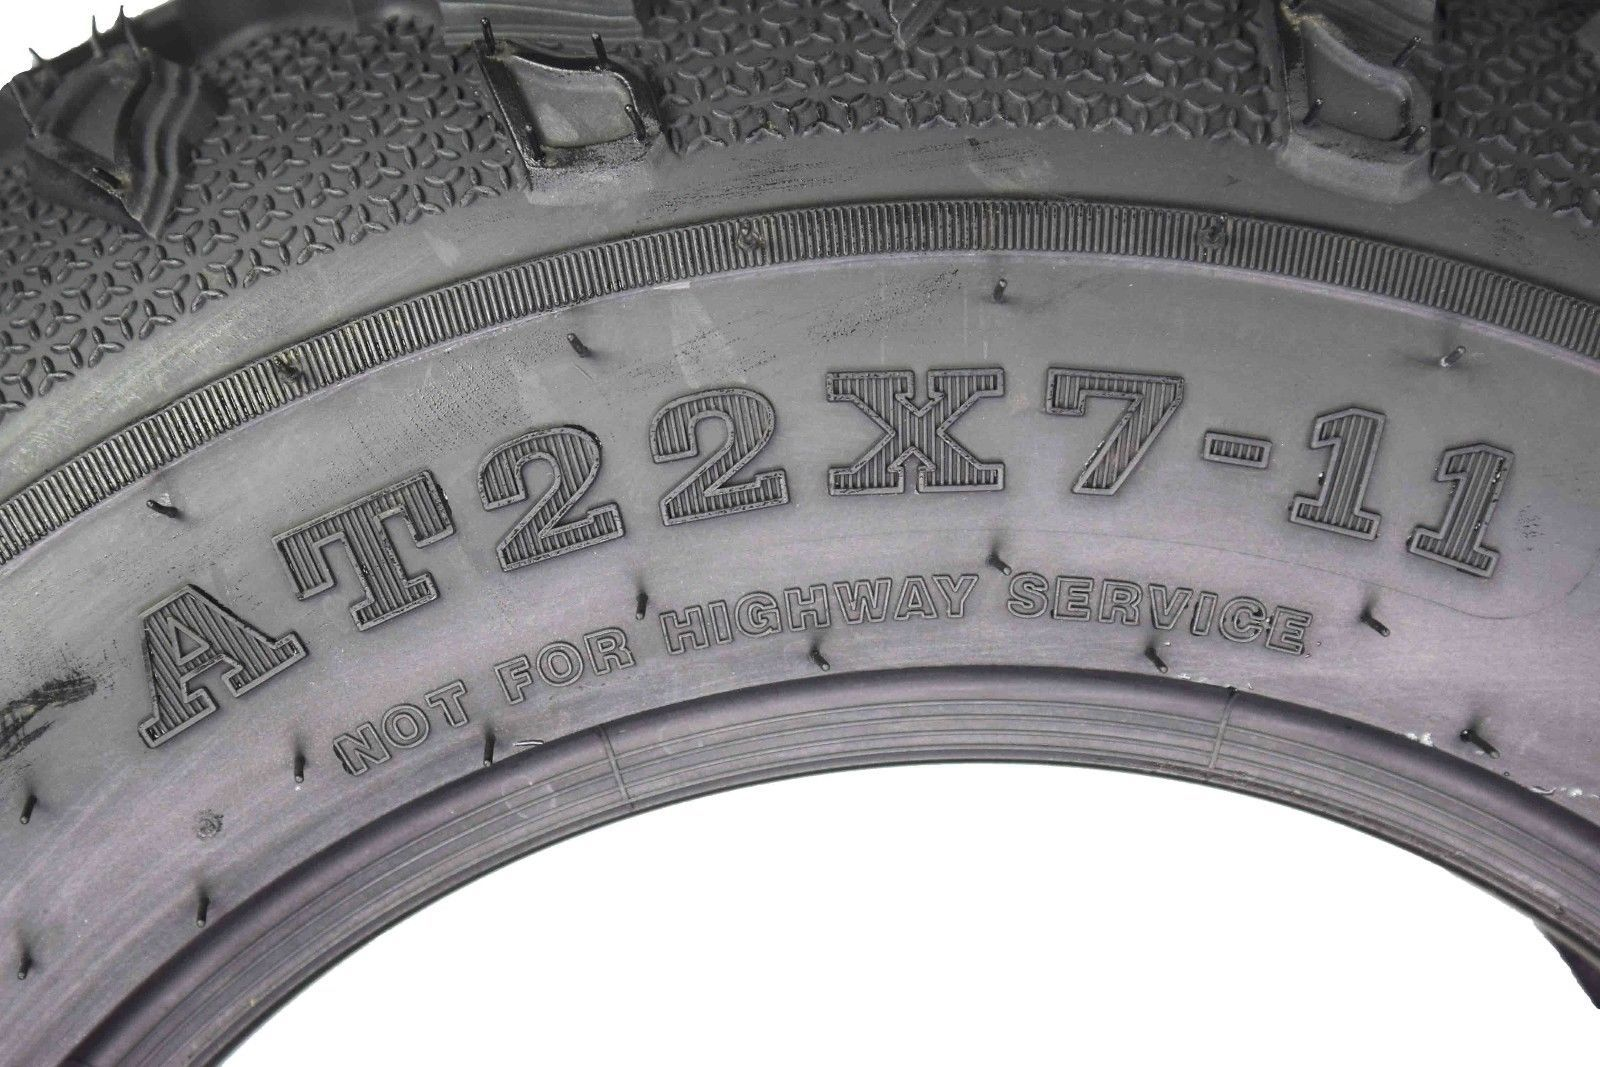 MASSFX-Grinder-22x7-11-Front-22x10-9-Rear-6-ply-ATV-Tires-Set-image-2